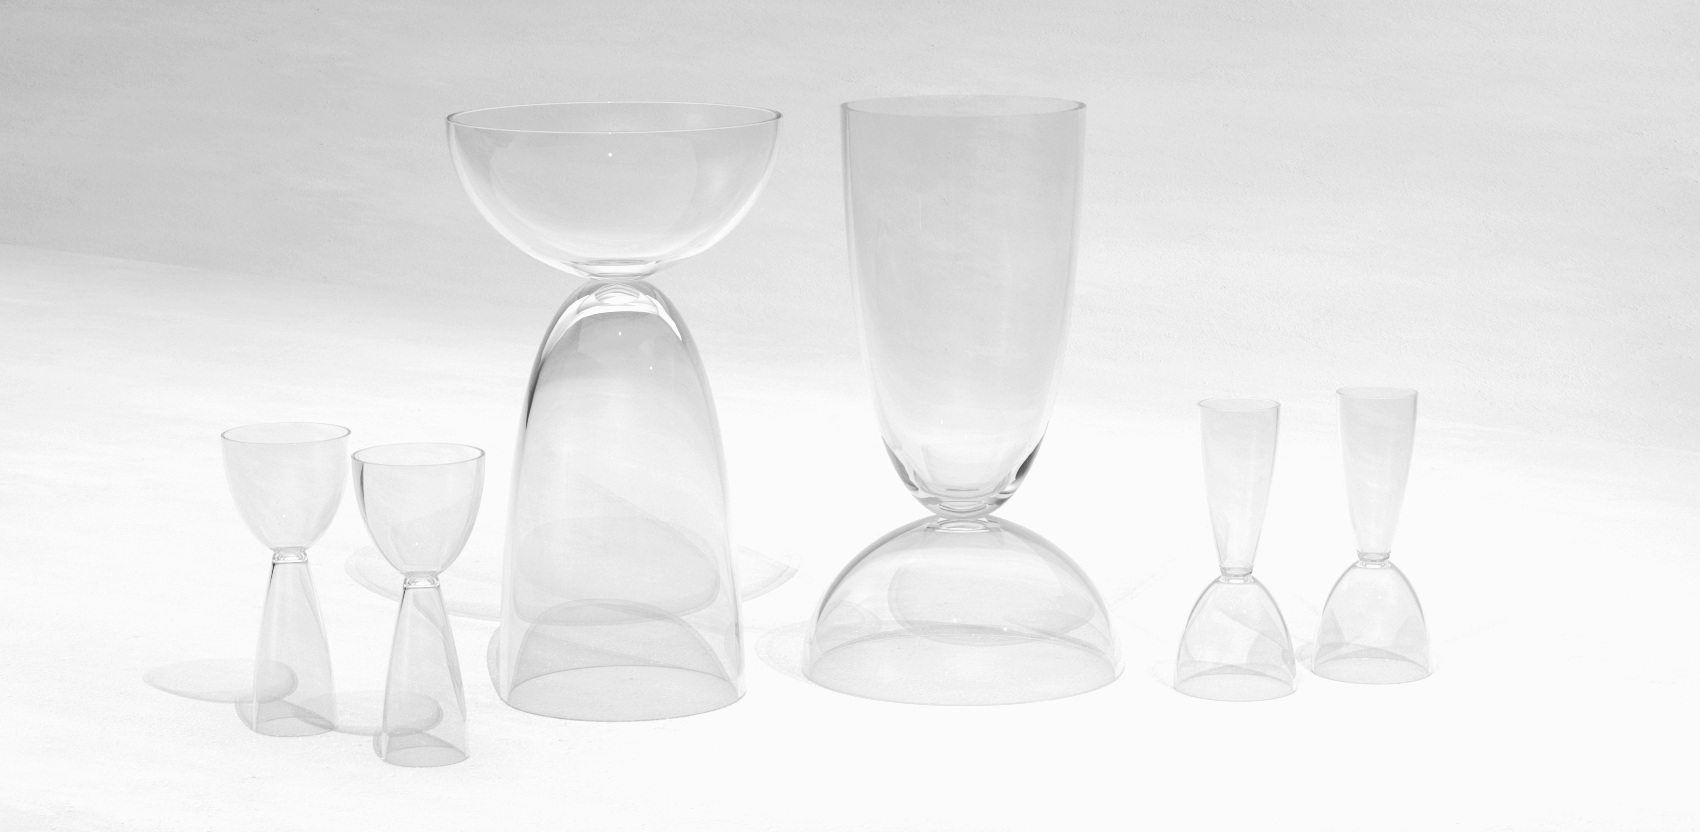 carafes+%26+glasses+new+.jpg